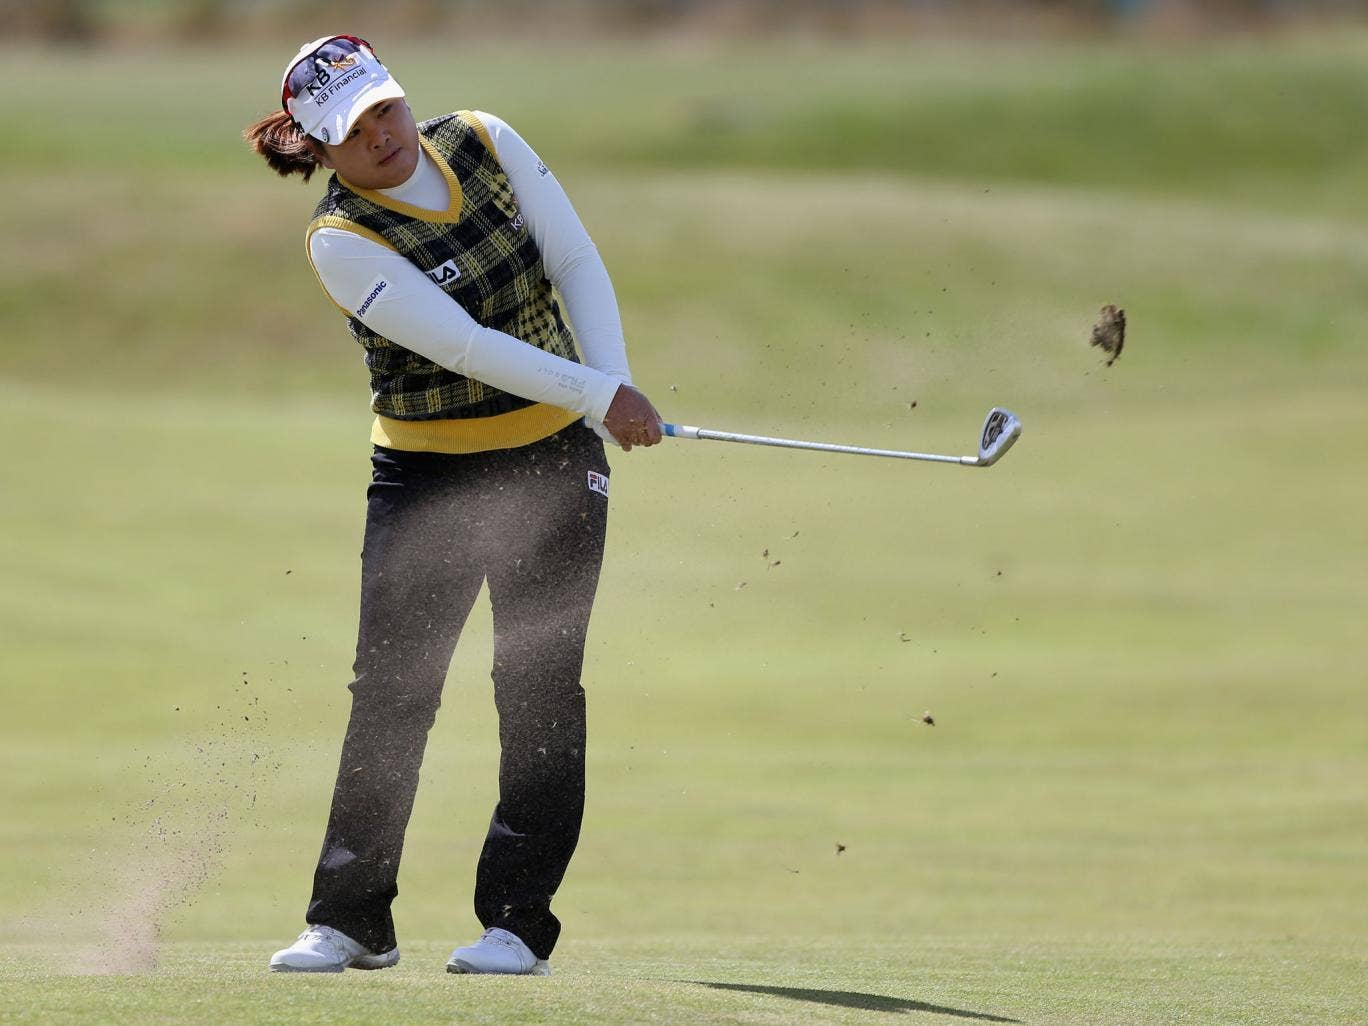 Inbee Park in action at St Andrews. Those who constantly seek to compare women's sport to the men are missing the point